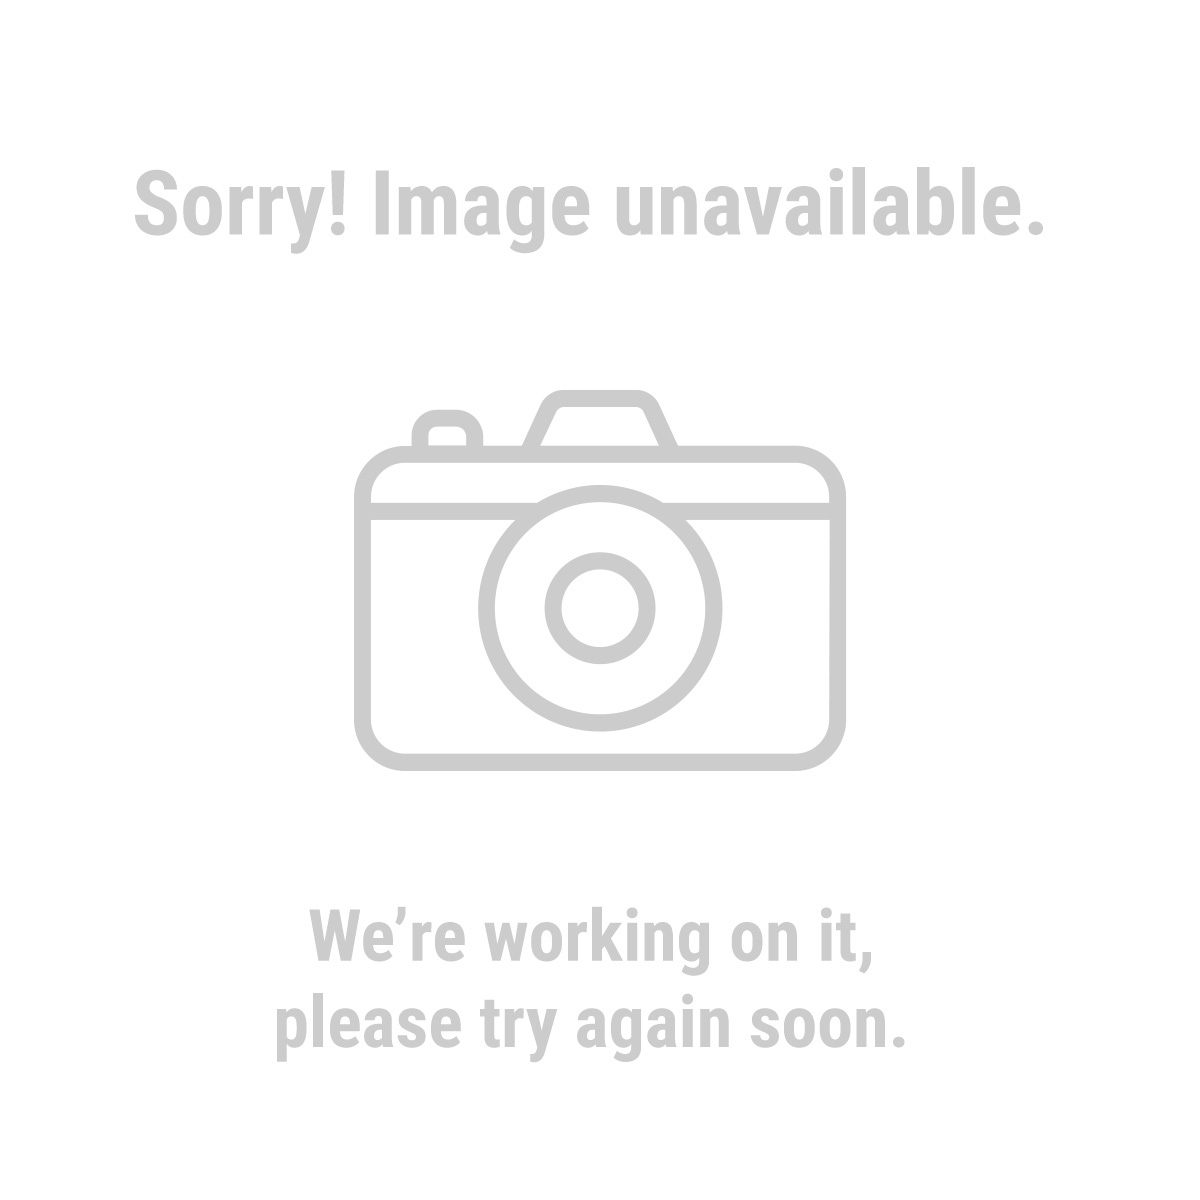 U.S. General® Pro 68784 44 in. 13 Drawer Glossy Red Industrial Roller Cabinet